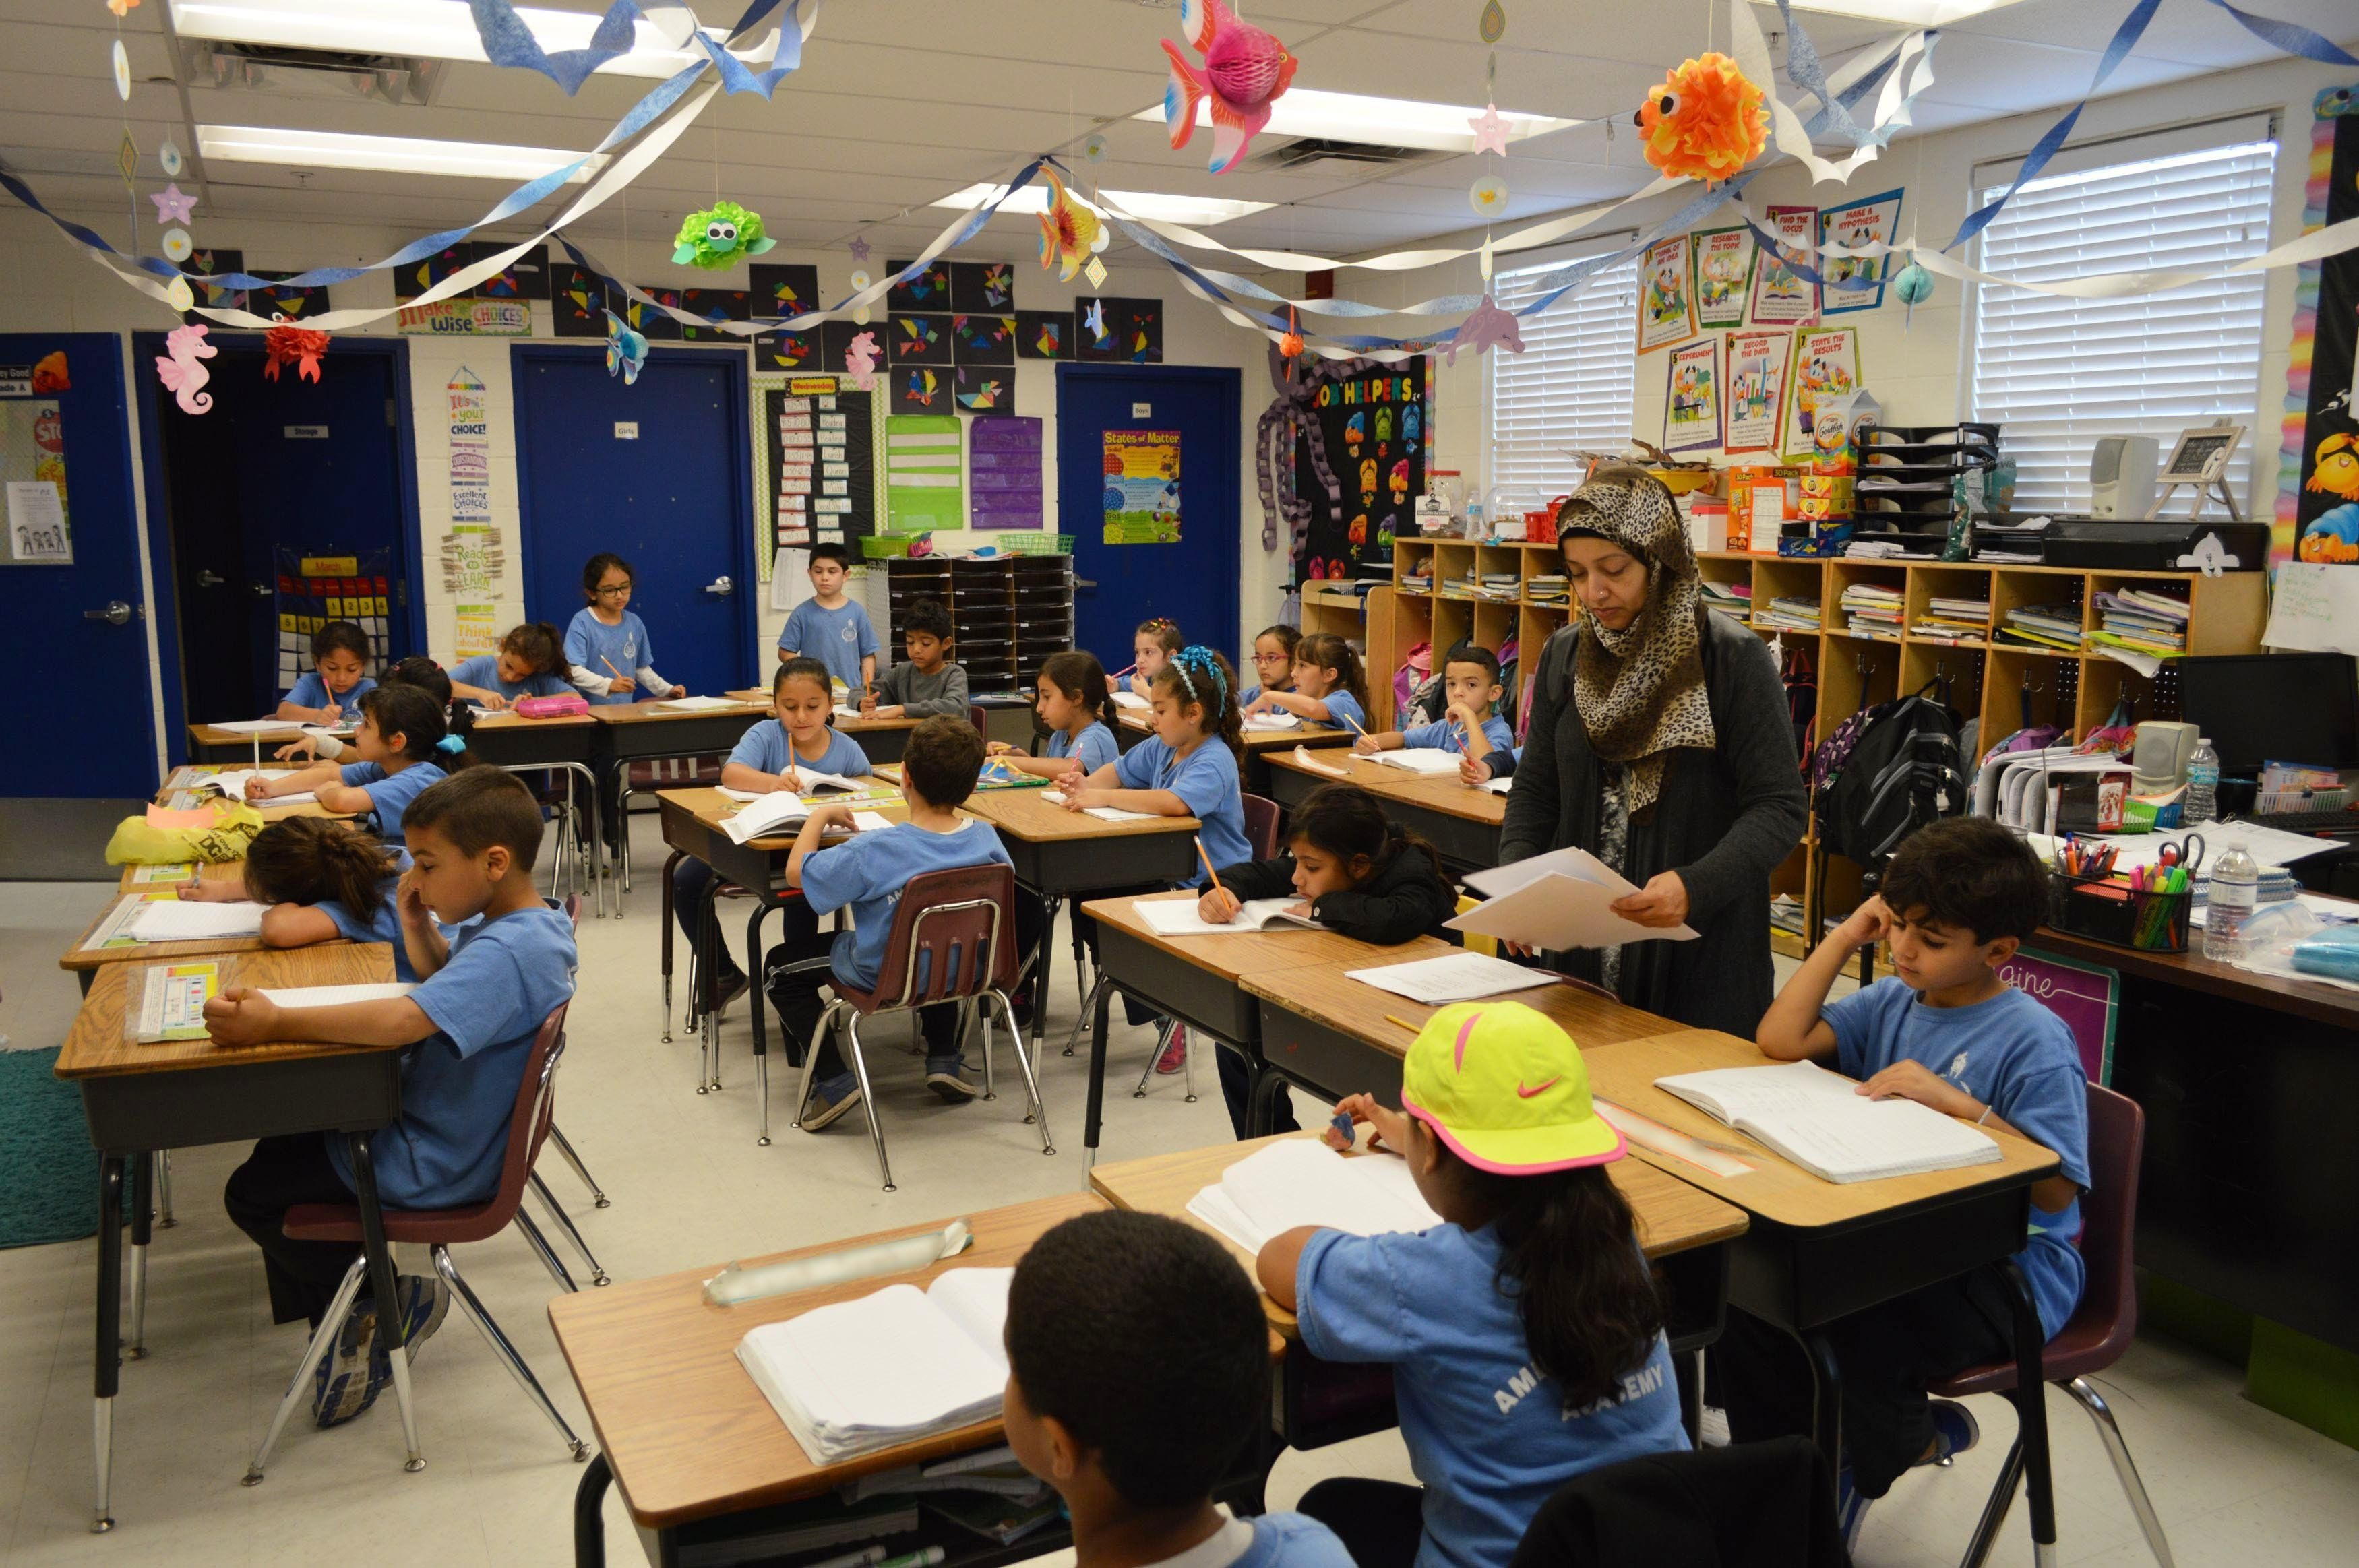 Children don't have to worry about anti-Muslim bullyingatthe American Youth Academy in Tampa, Florida.